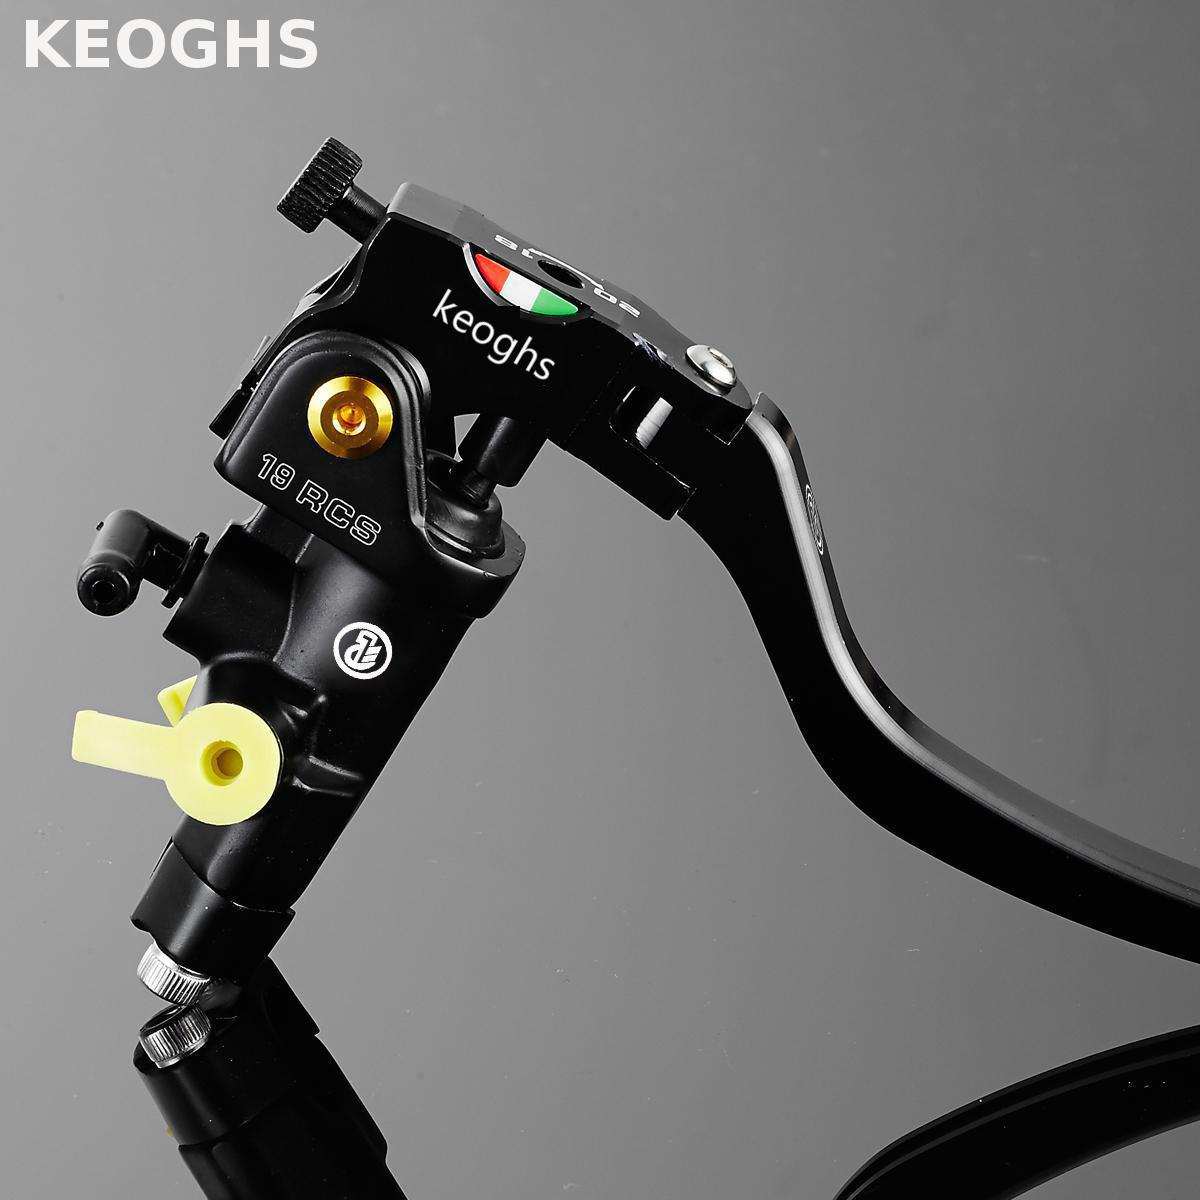 KEOGHS Motorcycle 22mm 7/8'' Universal Brake Master Cylinder Left And Right Cnc Aluminum Hydraulic Brake System For Honda Yamaha radial brake master cylinder for honda cb600f cb900f hornet cb1000r motorcycle upgrade front brake system